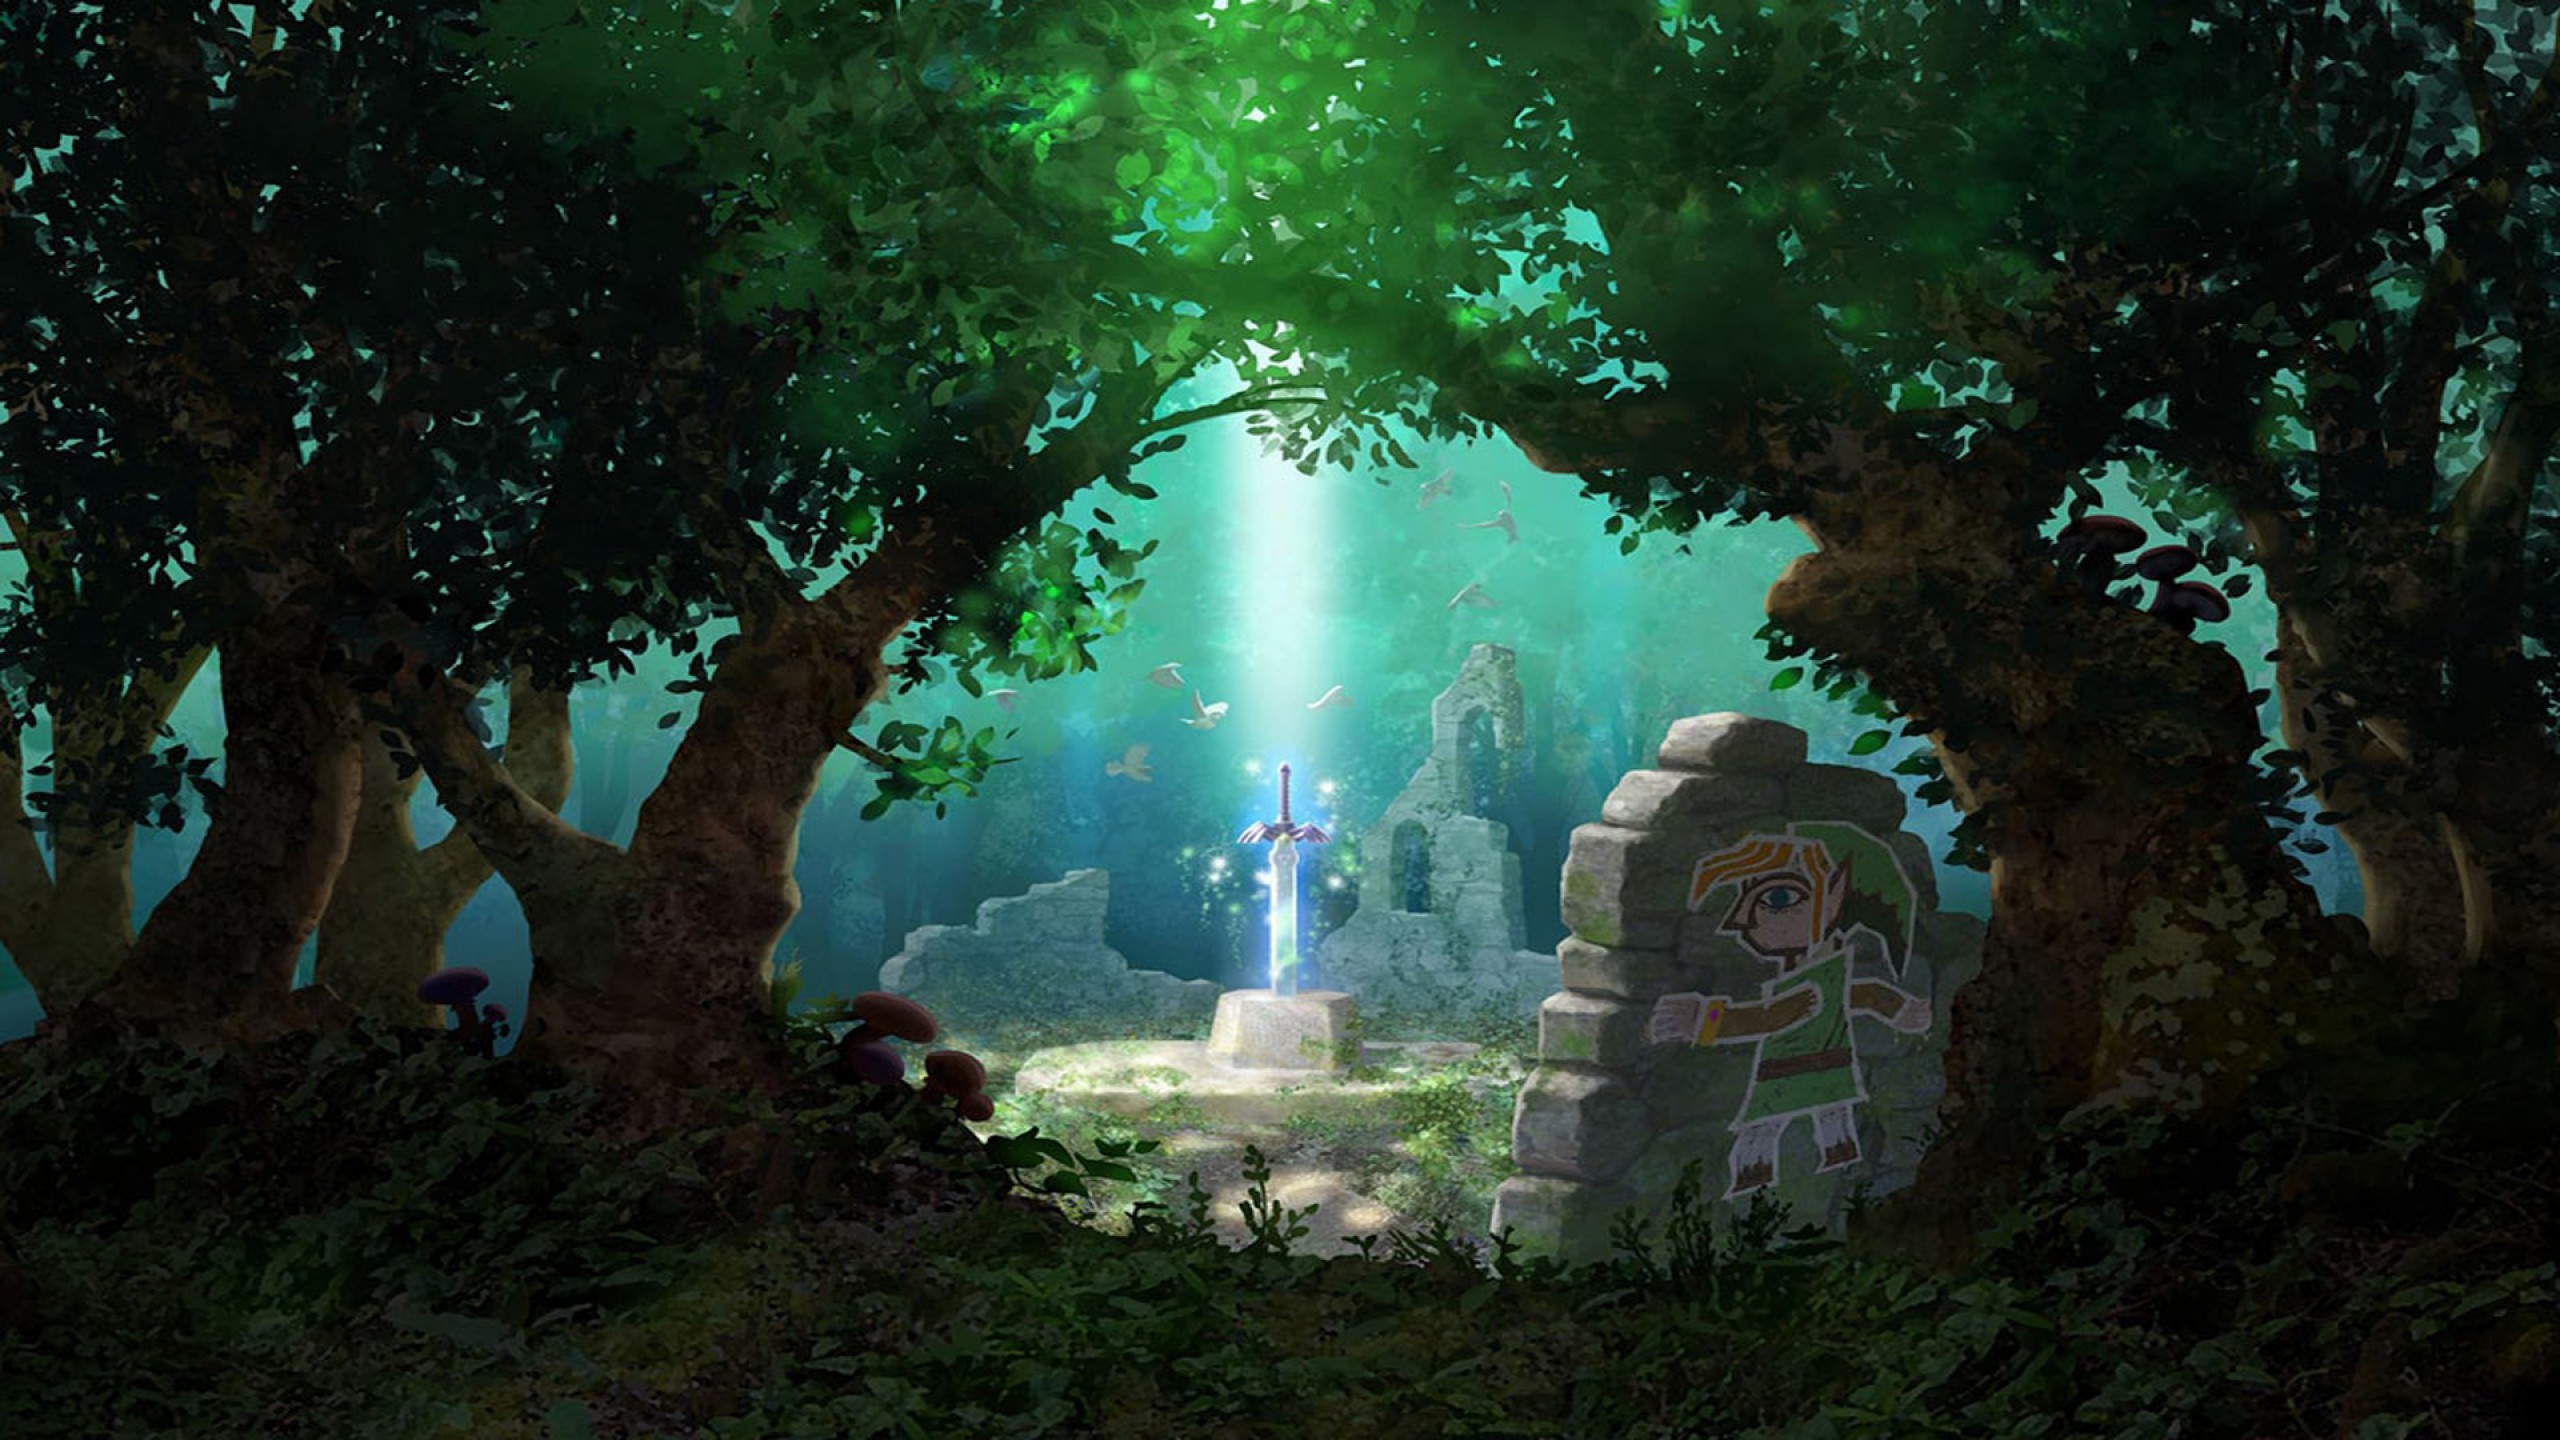 legend of zelda wallpaper